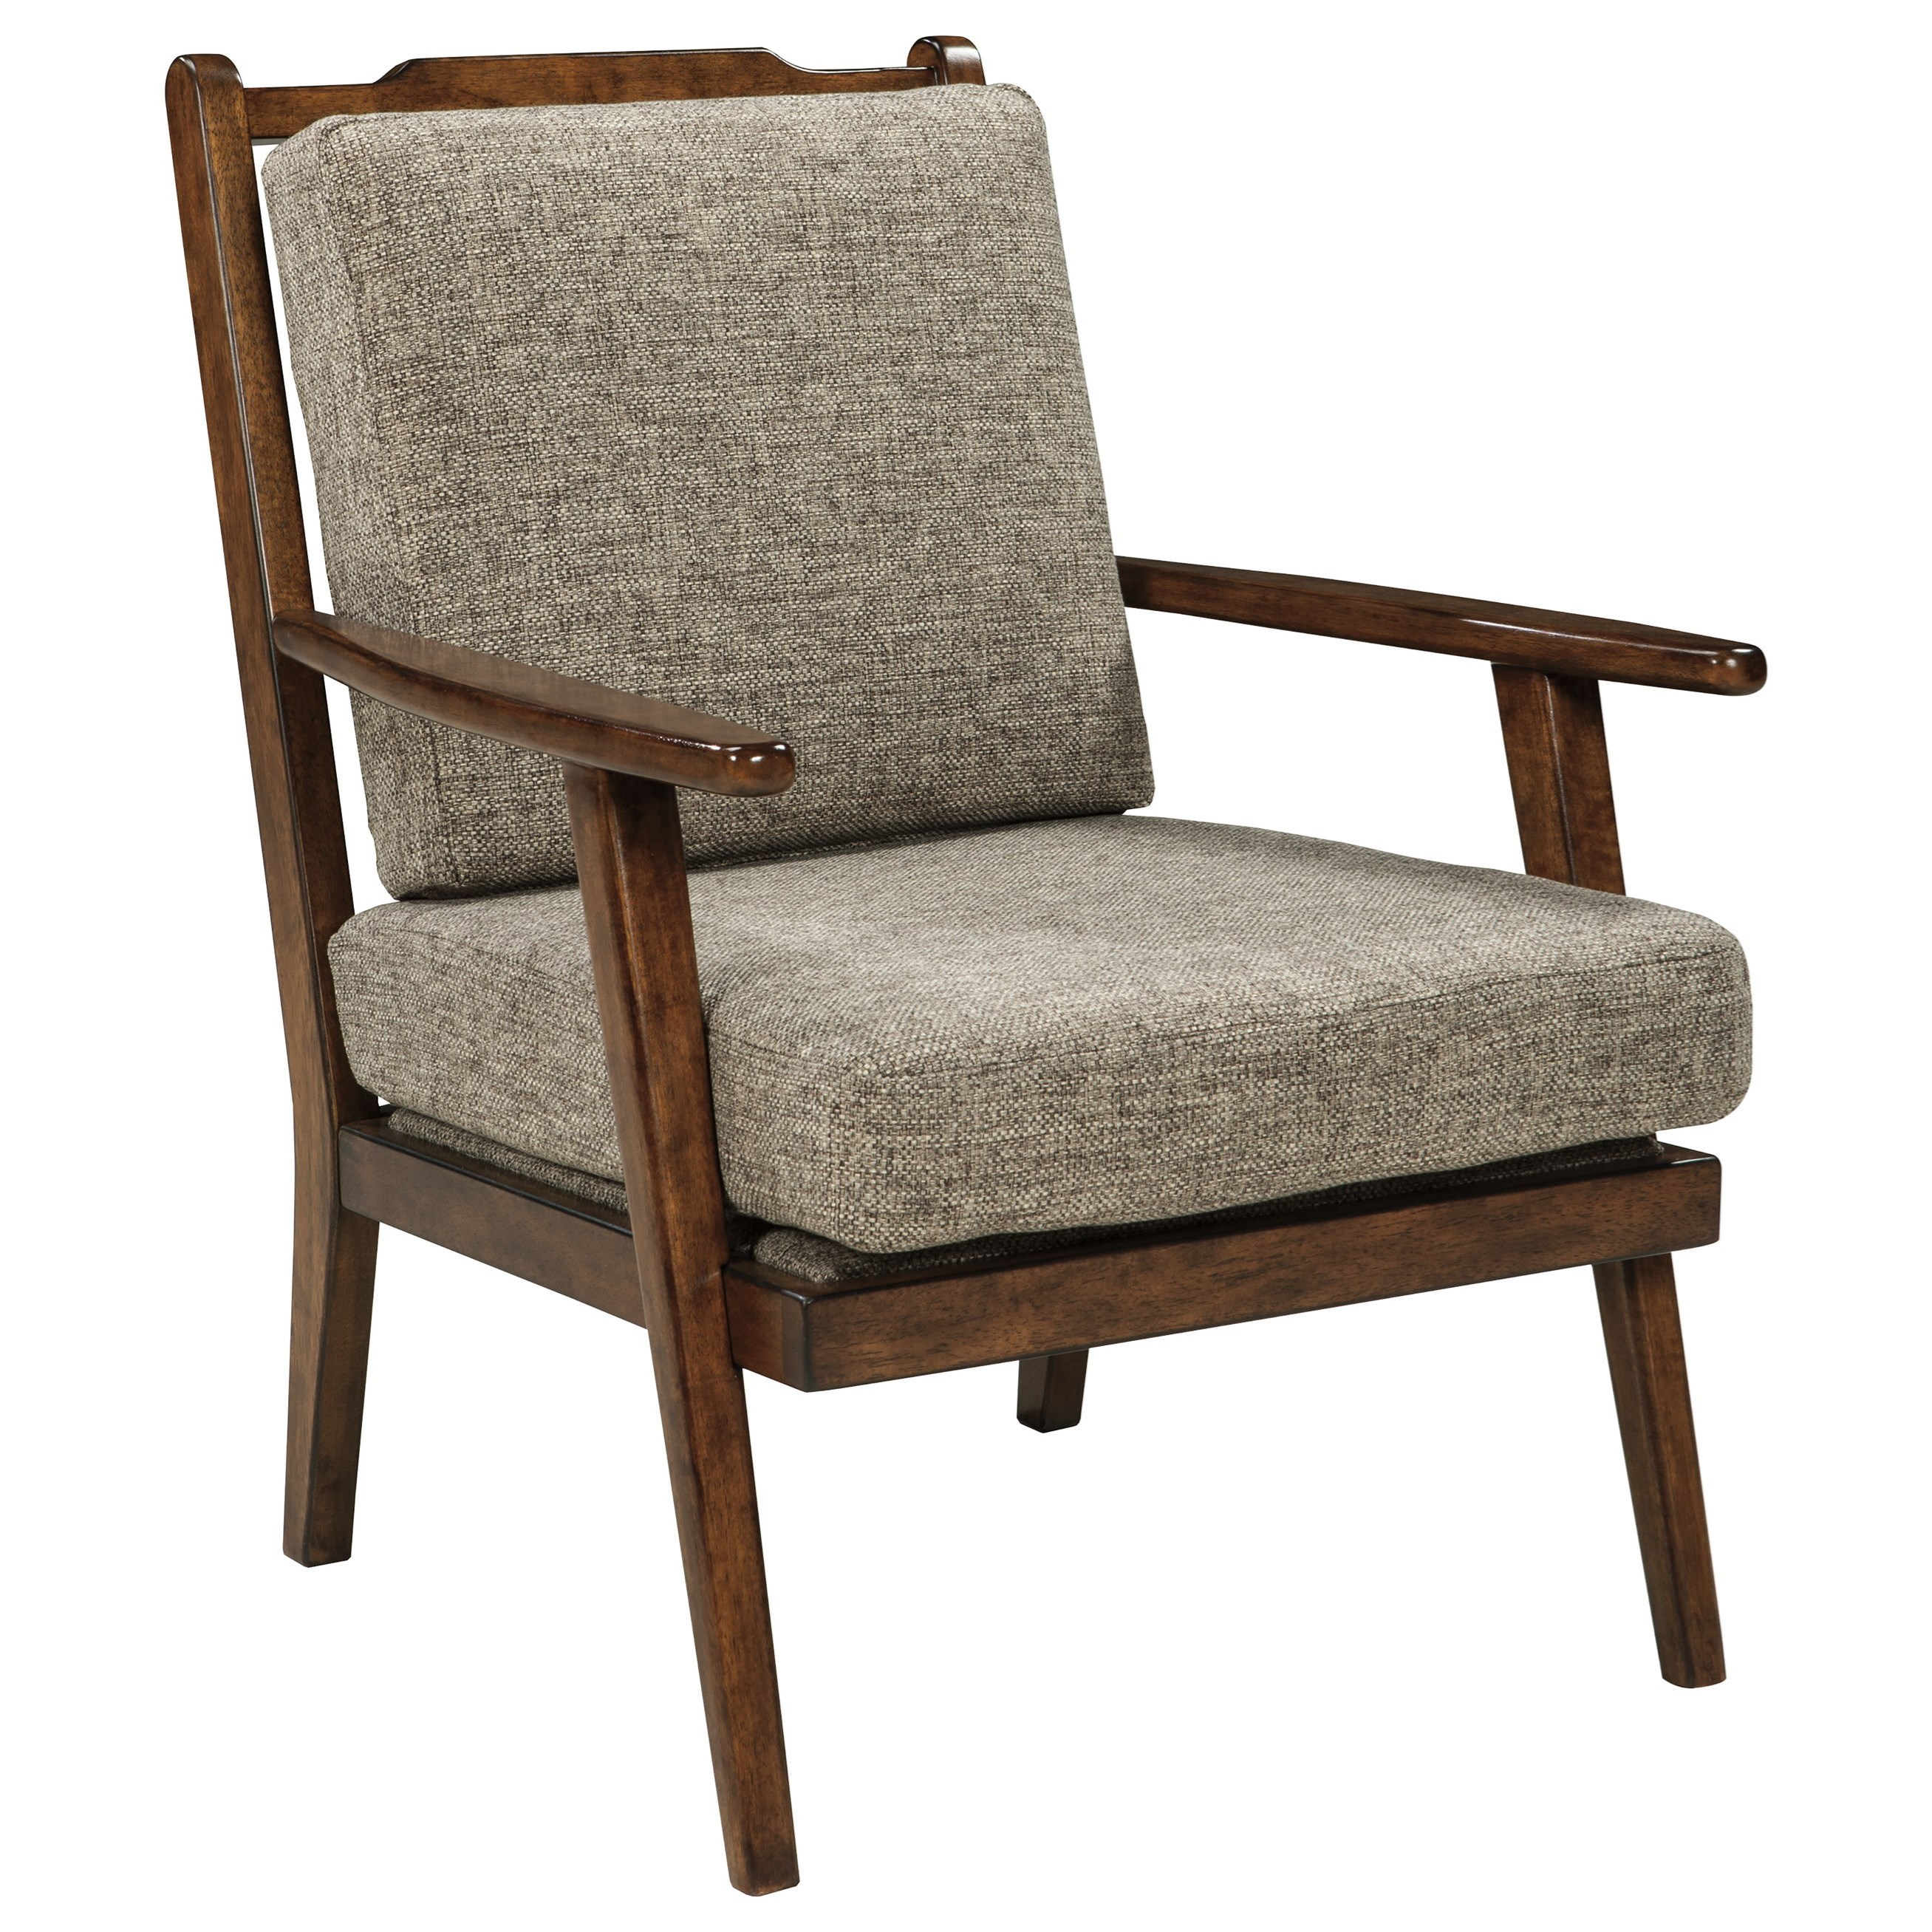 Benchcraft by Ashley Dahra Danish Modern Style Accent